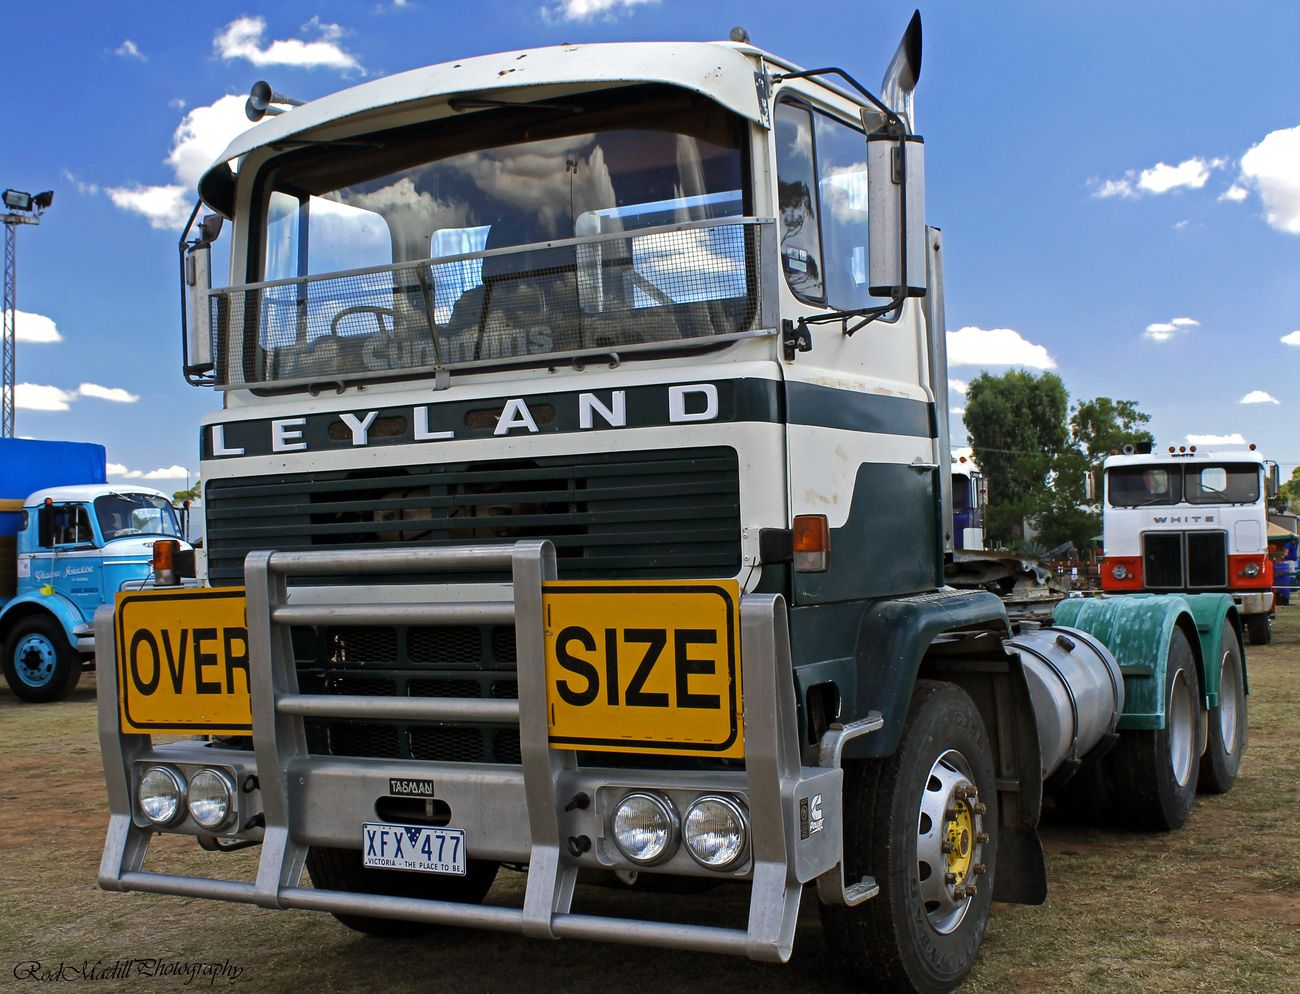 A cabover Leyland ,don't see many of these around since the 70's.